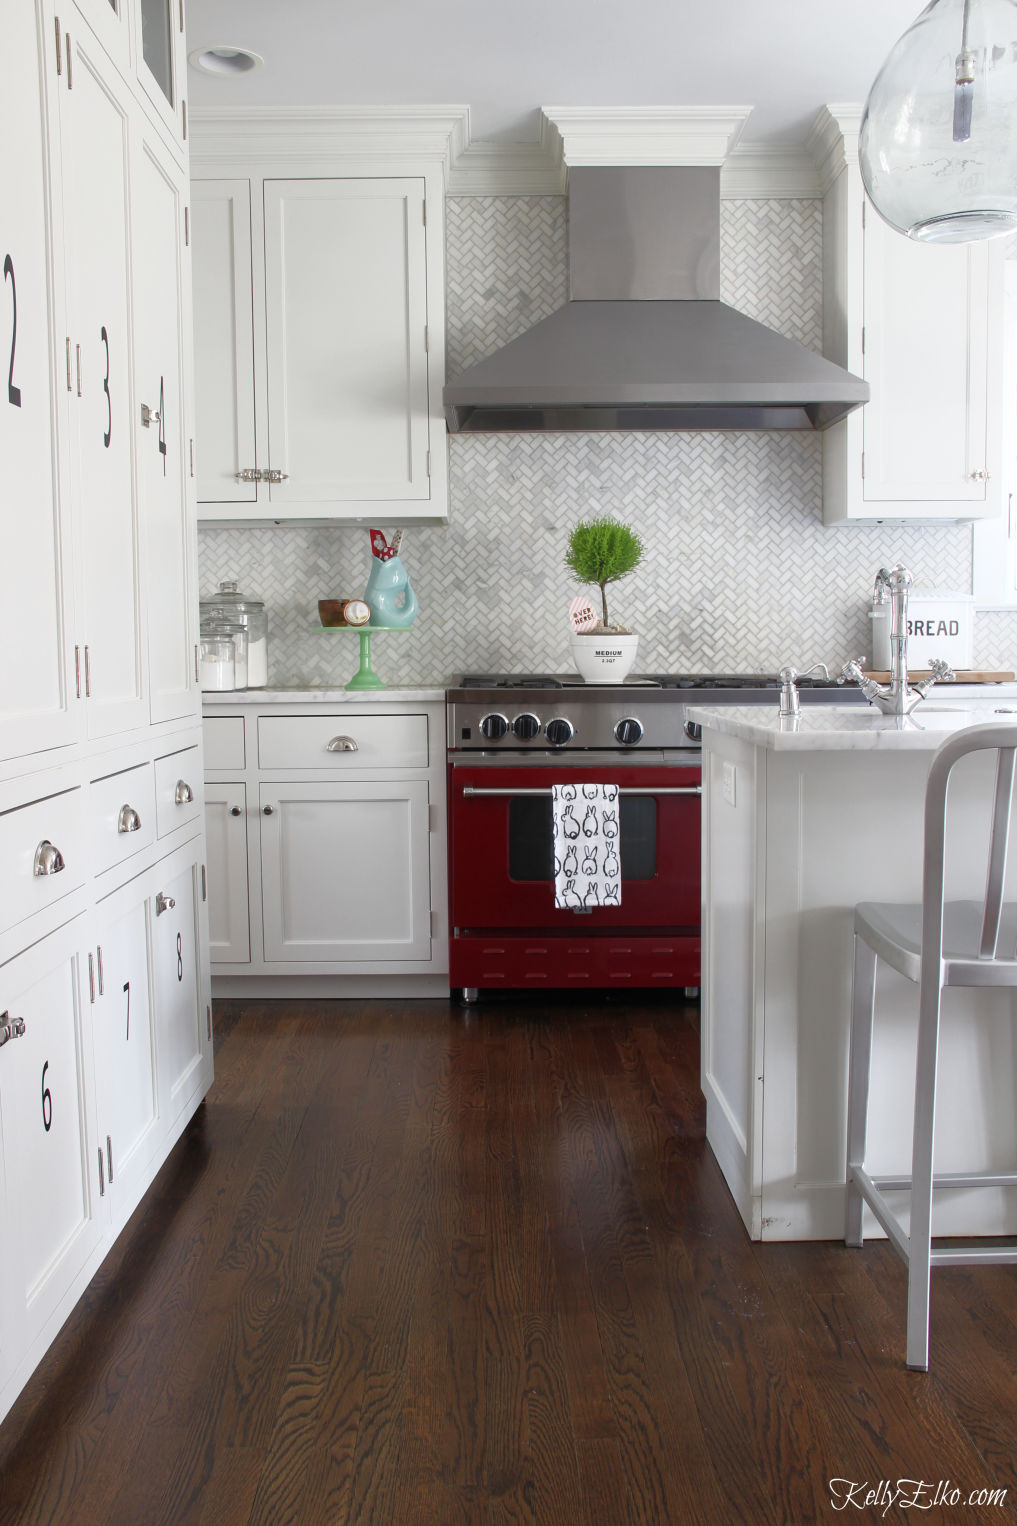 Love this red stove with white cabinets and marble backsplash kellyelko.com #kitchen #kitchendecor #kitchendesign #whitekitchen #appliances #ovens